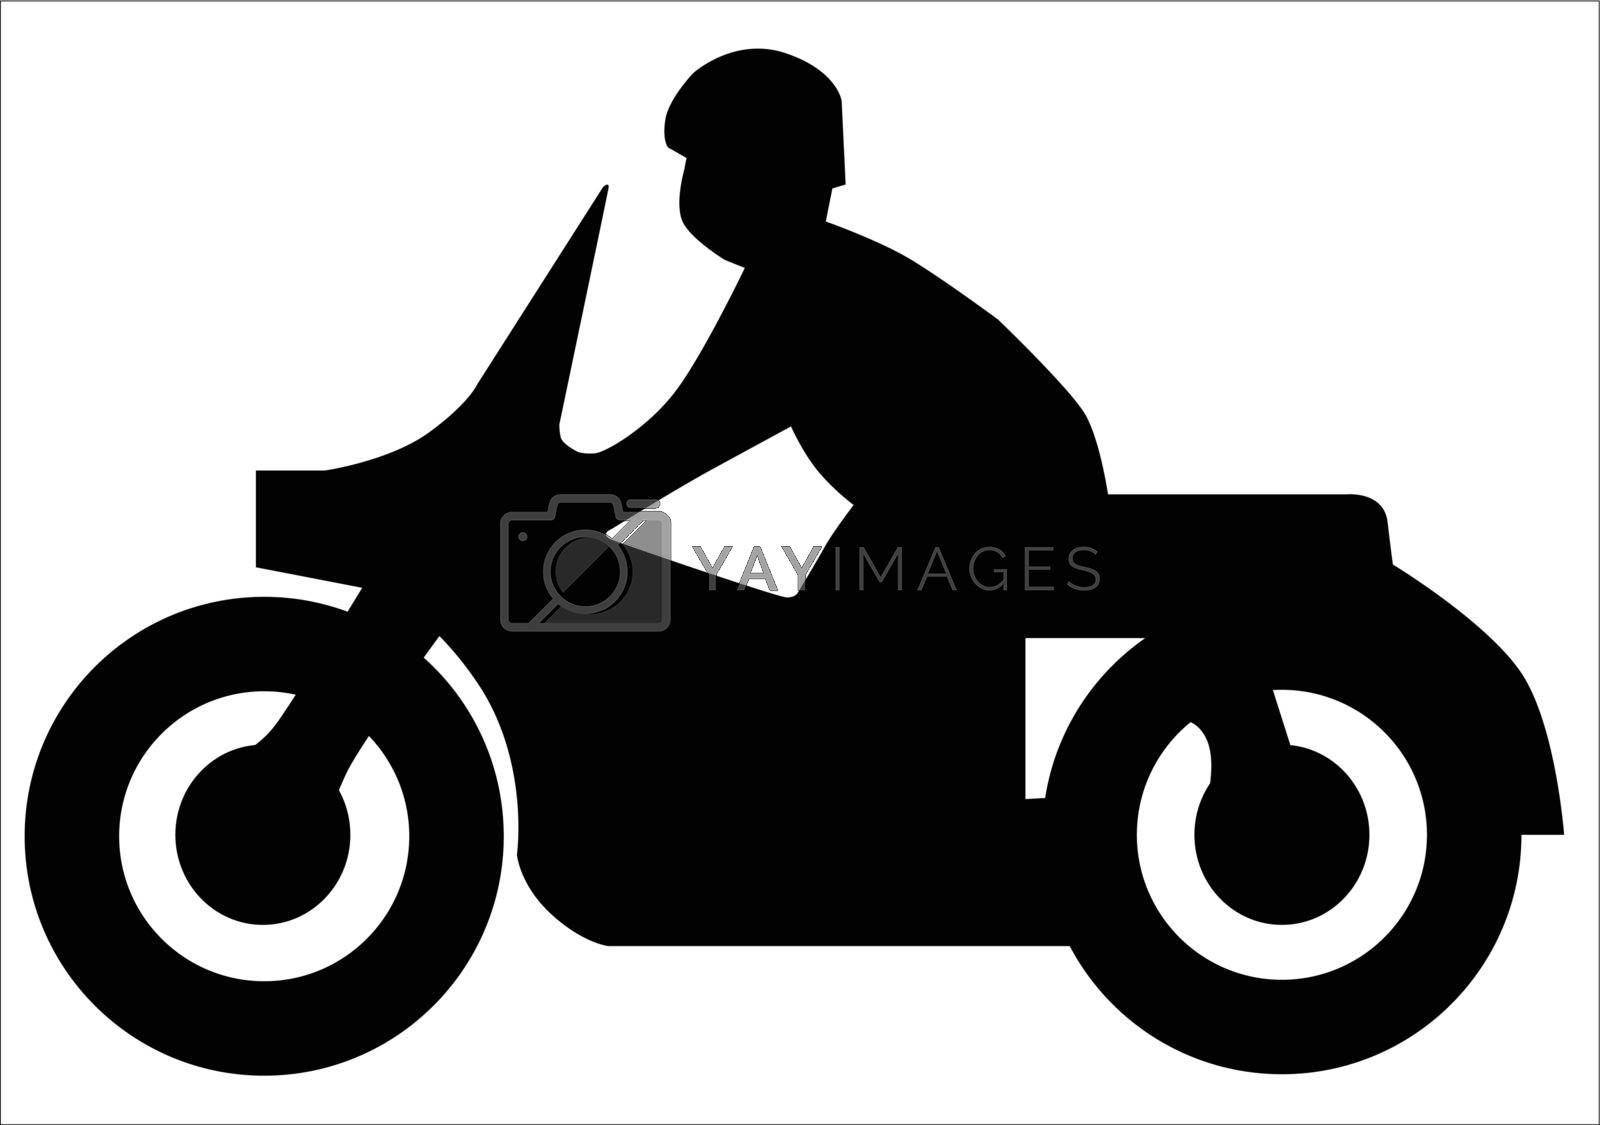 Silhouette of a motorcycle and rider of the type found on traffic signs.